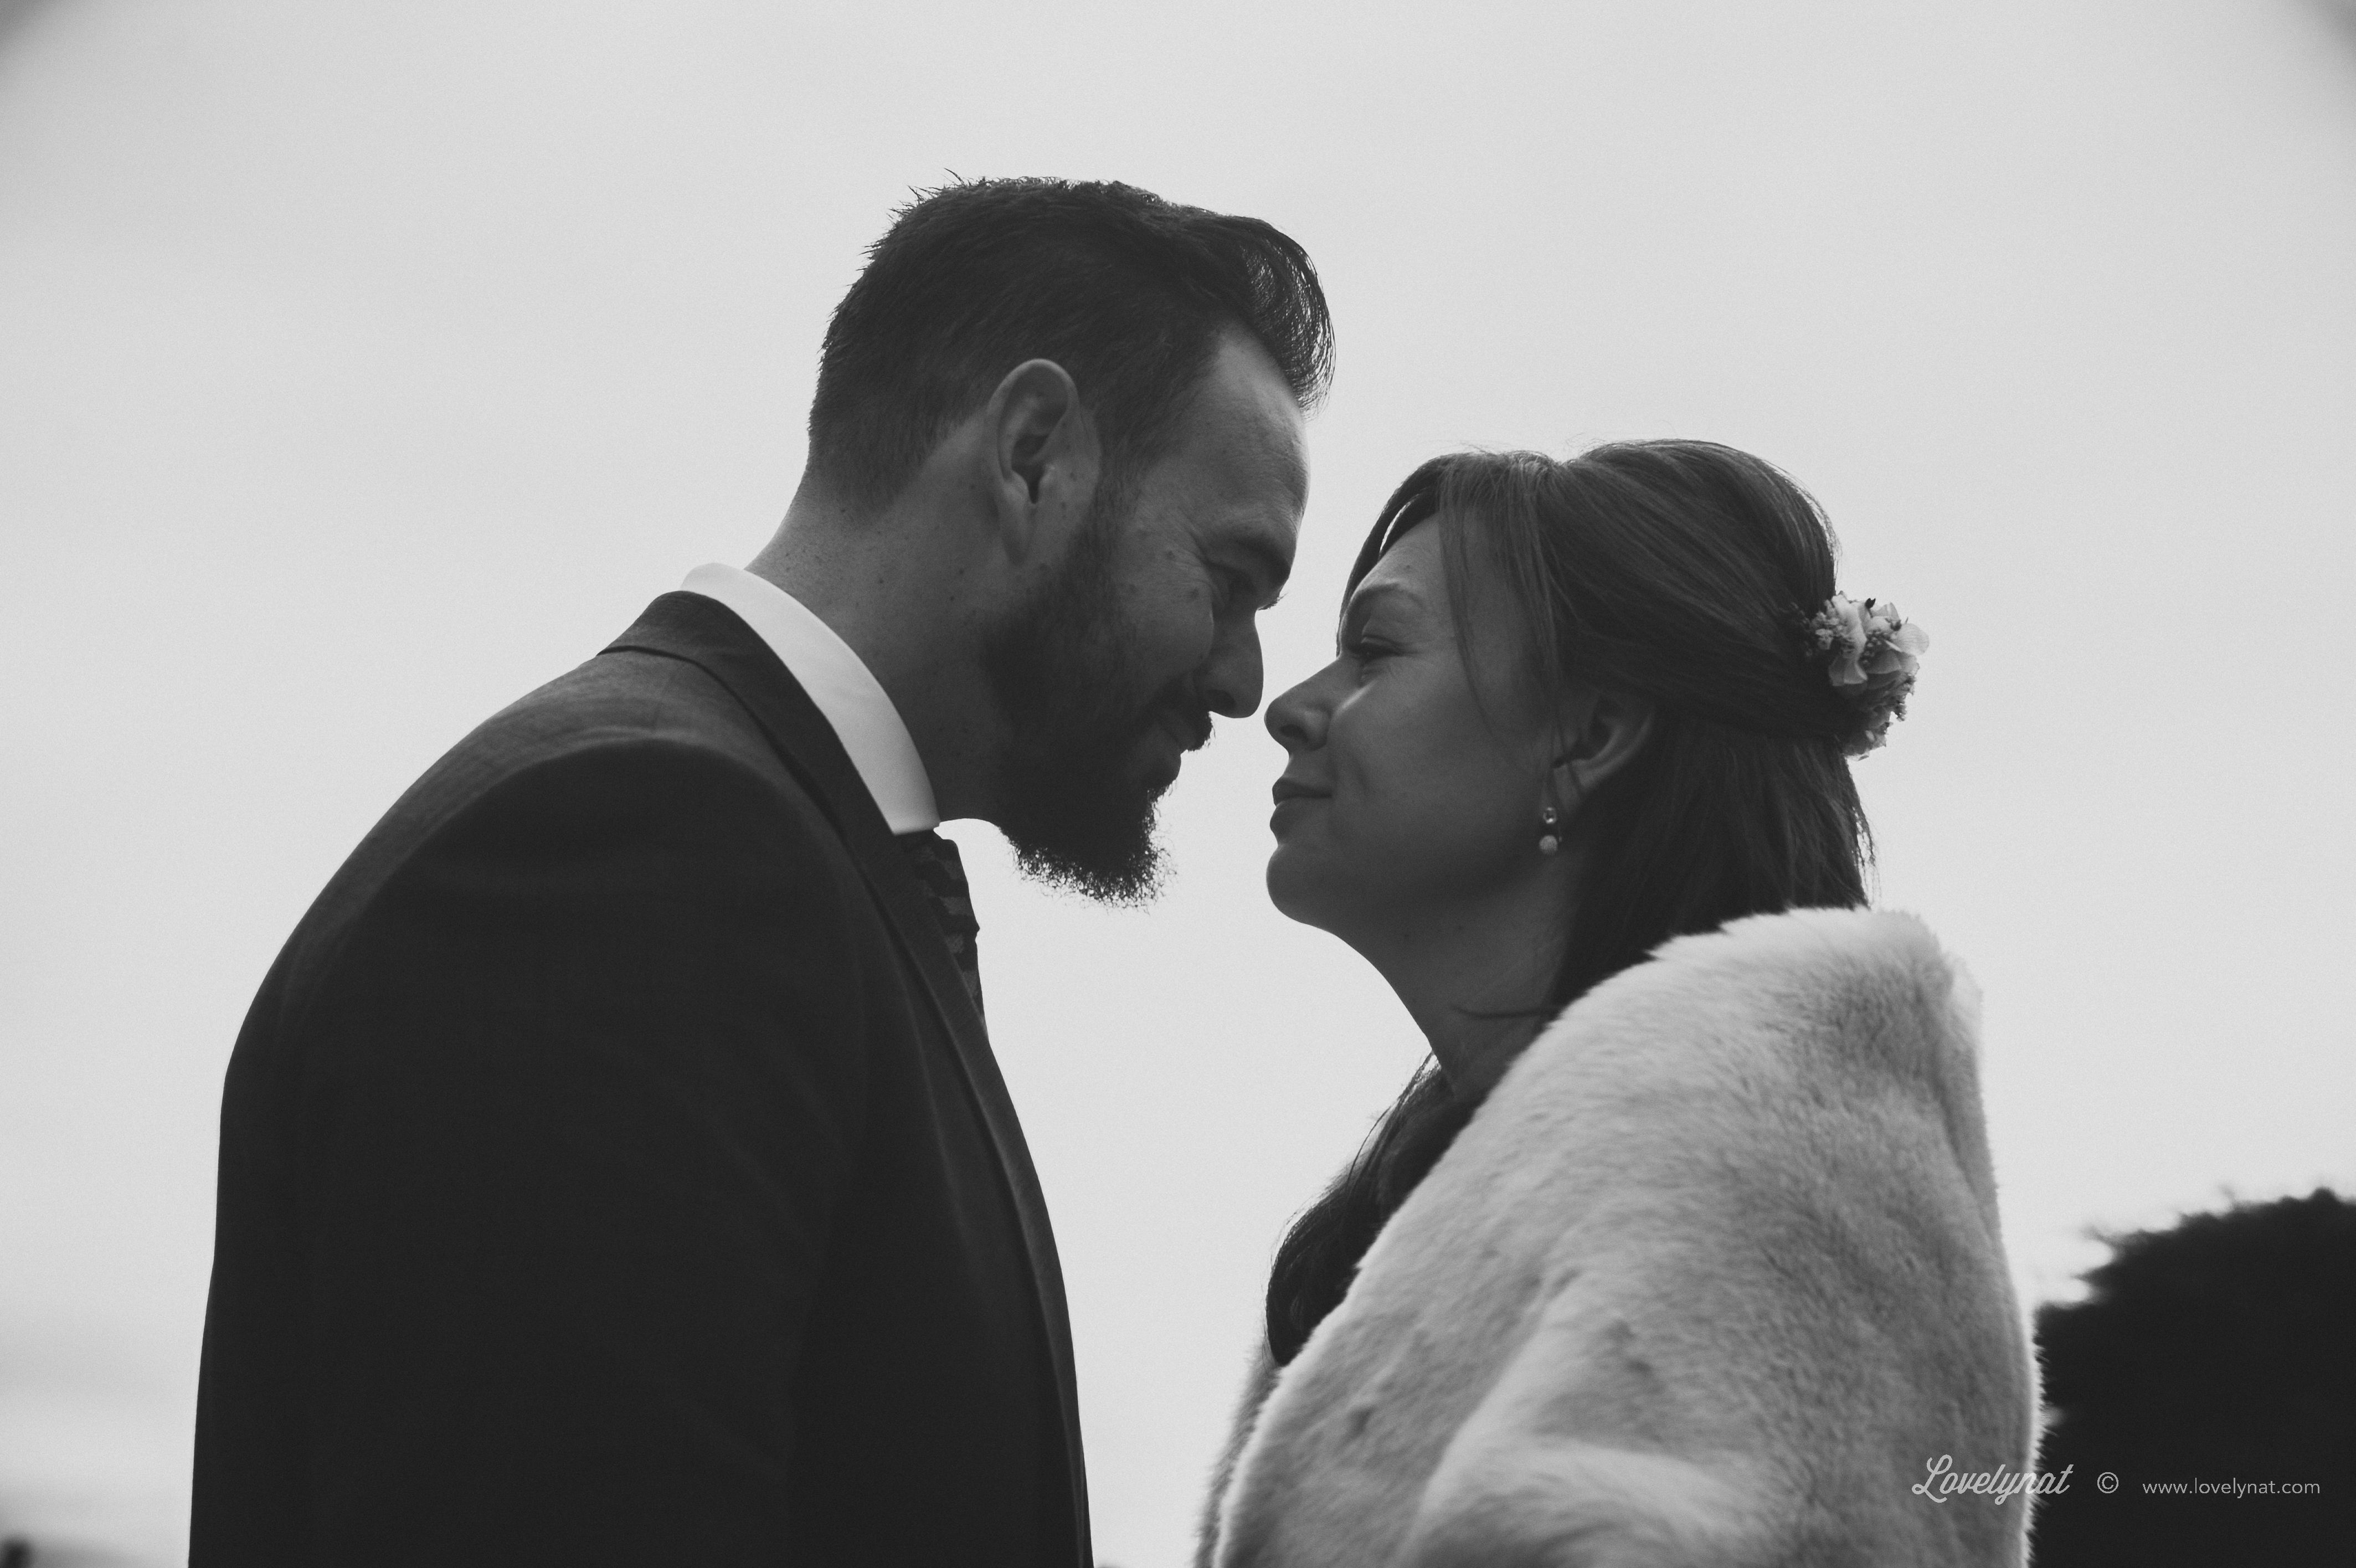 Antonio&Ester_Lovelynat-Photography_078_BW_result